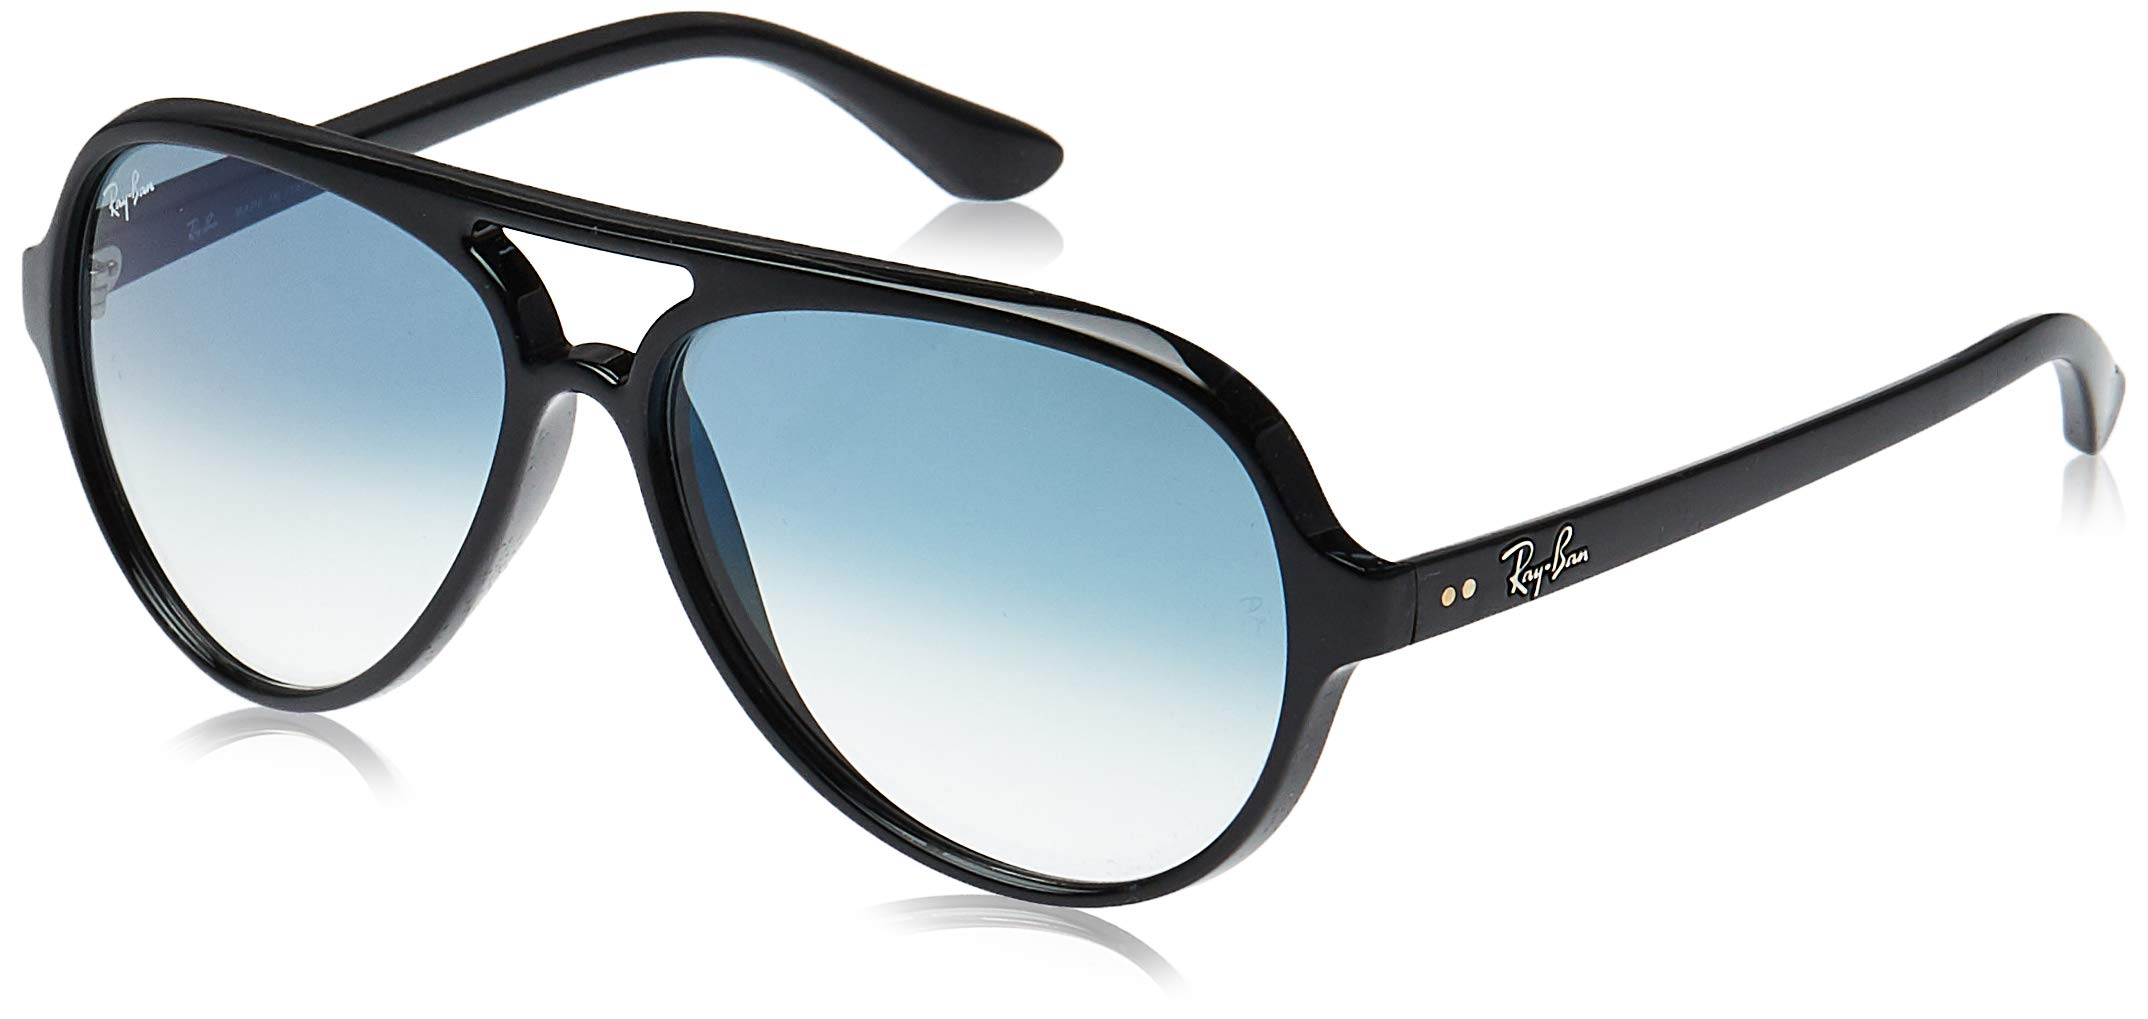 RAY-BAN RB4125 Cats 5000 Aviator Sunglasses, Black/Blue Gradient, 59 mm by RAY-BAN